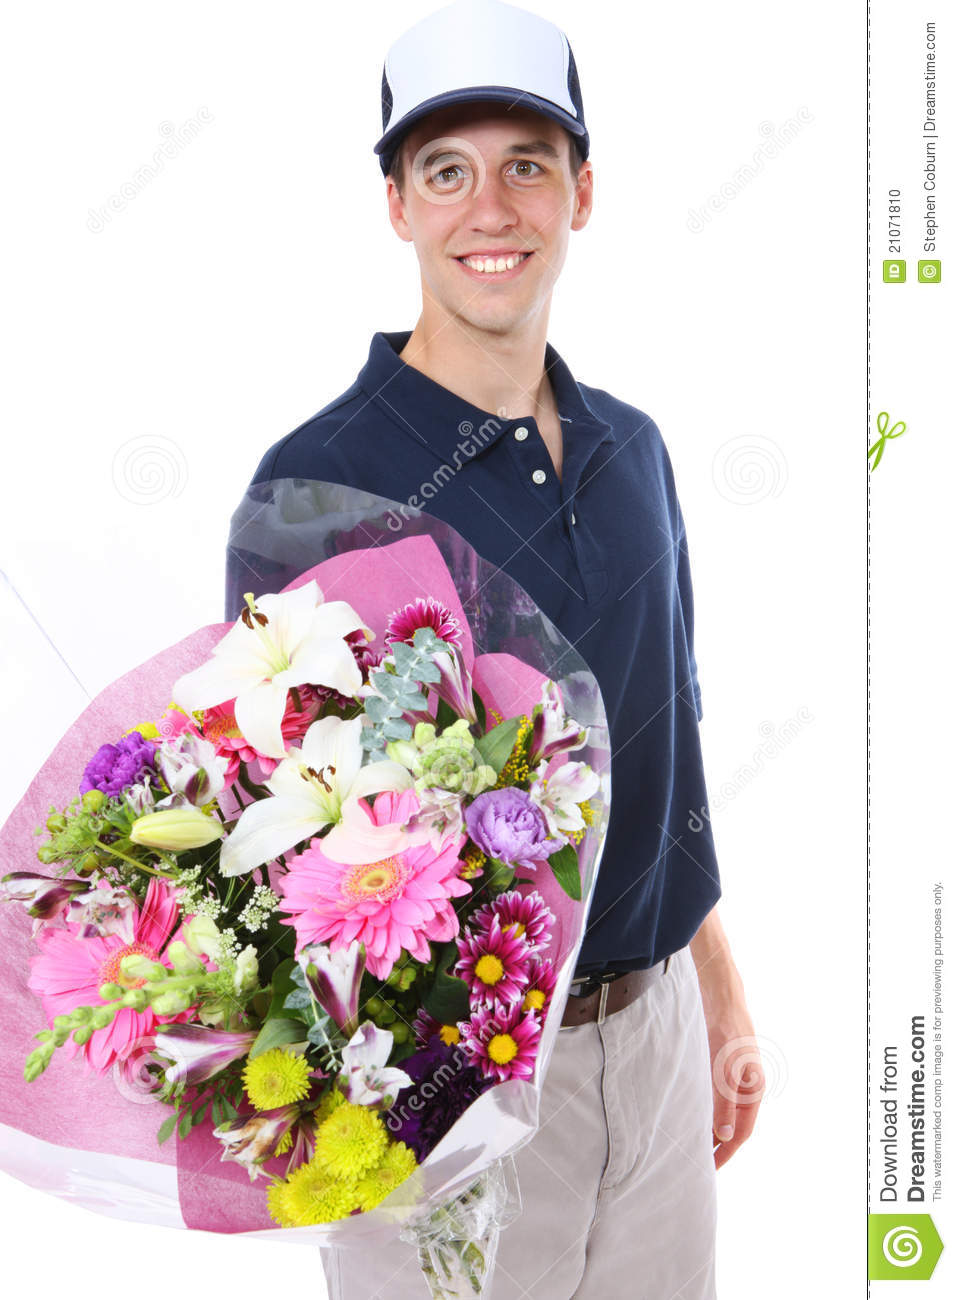 Flower Delivery Man